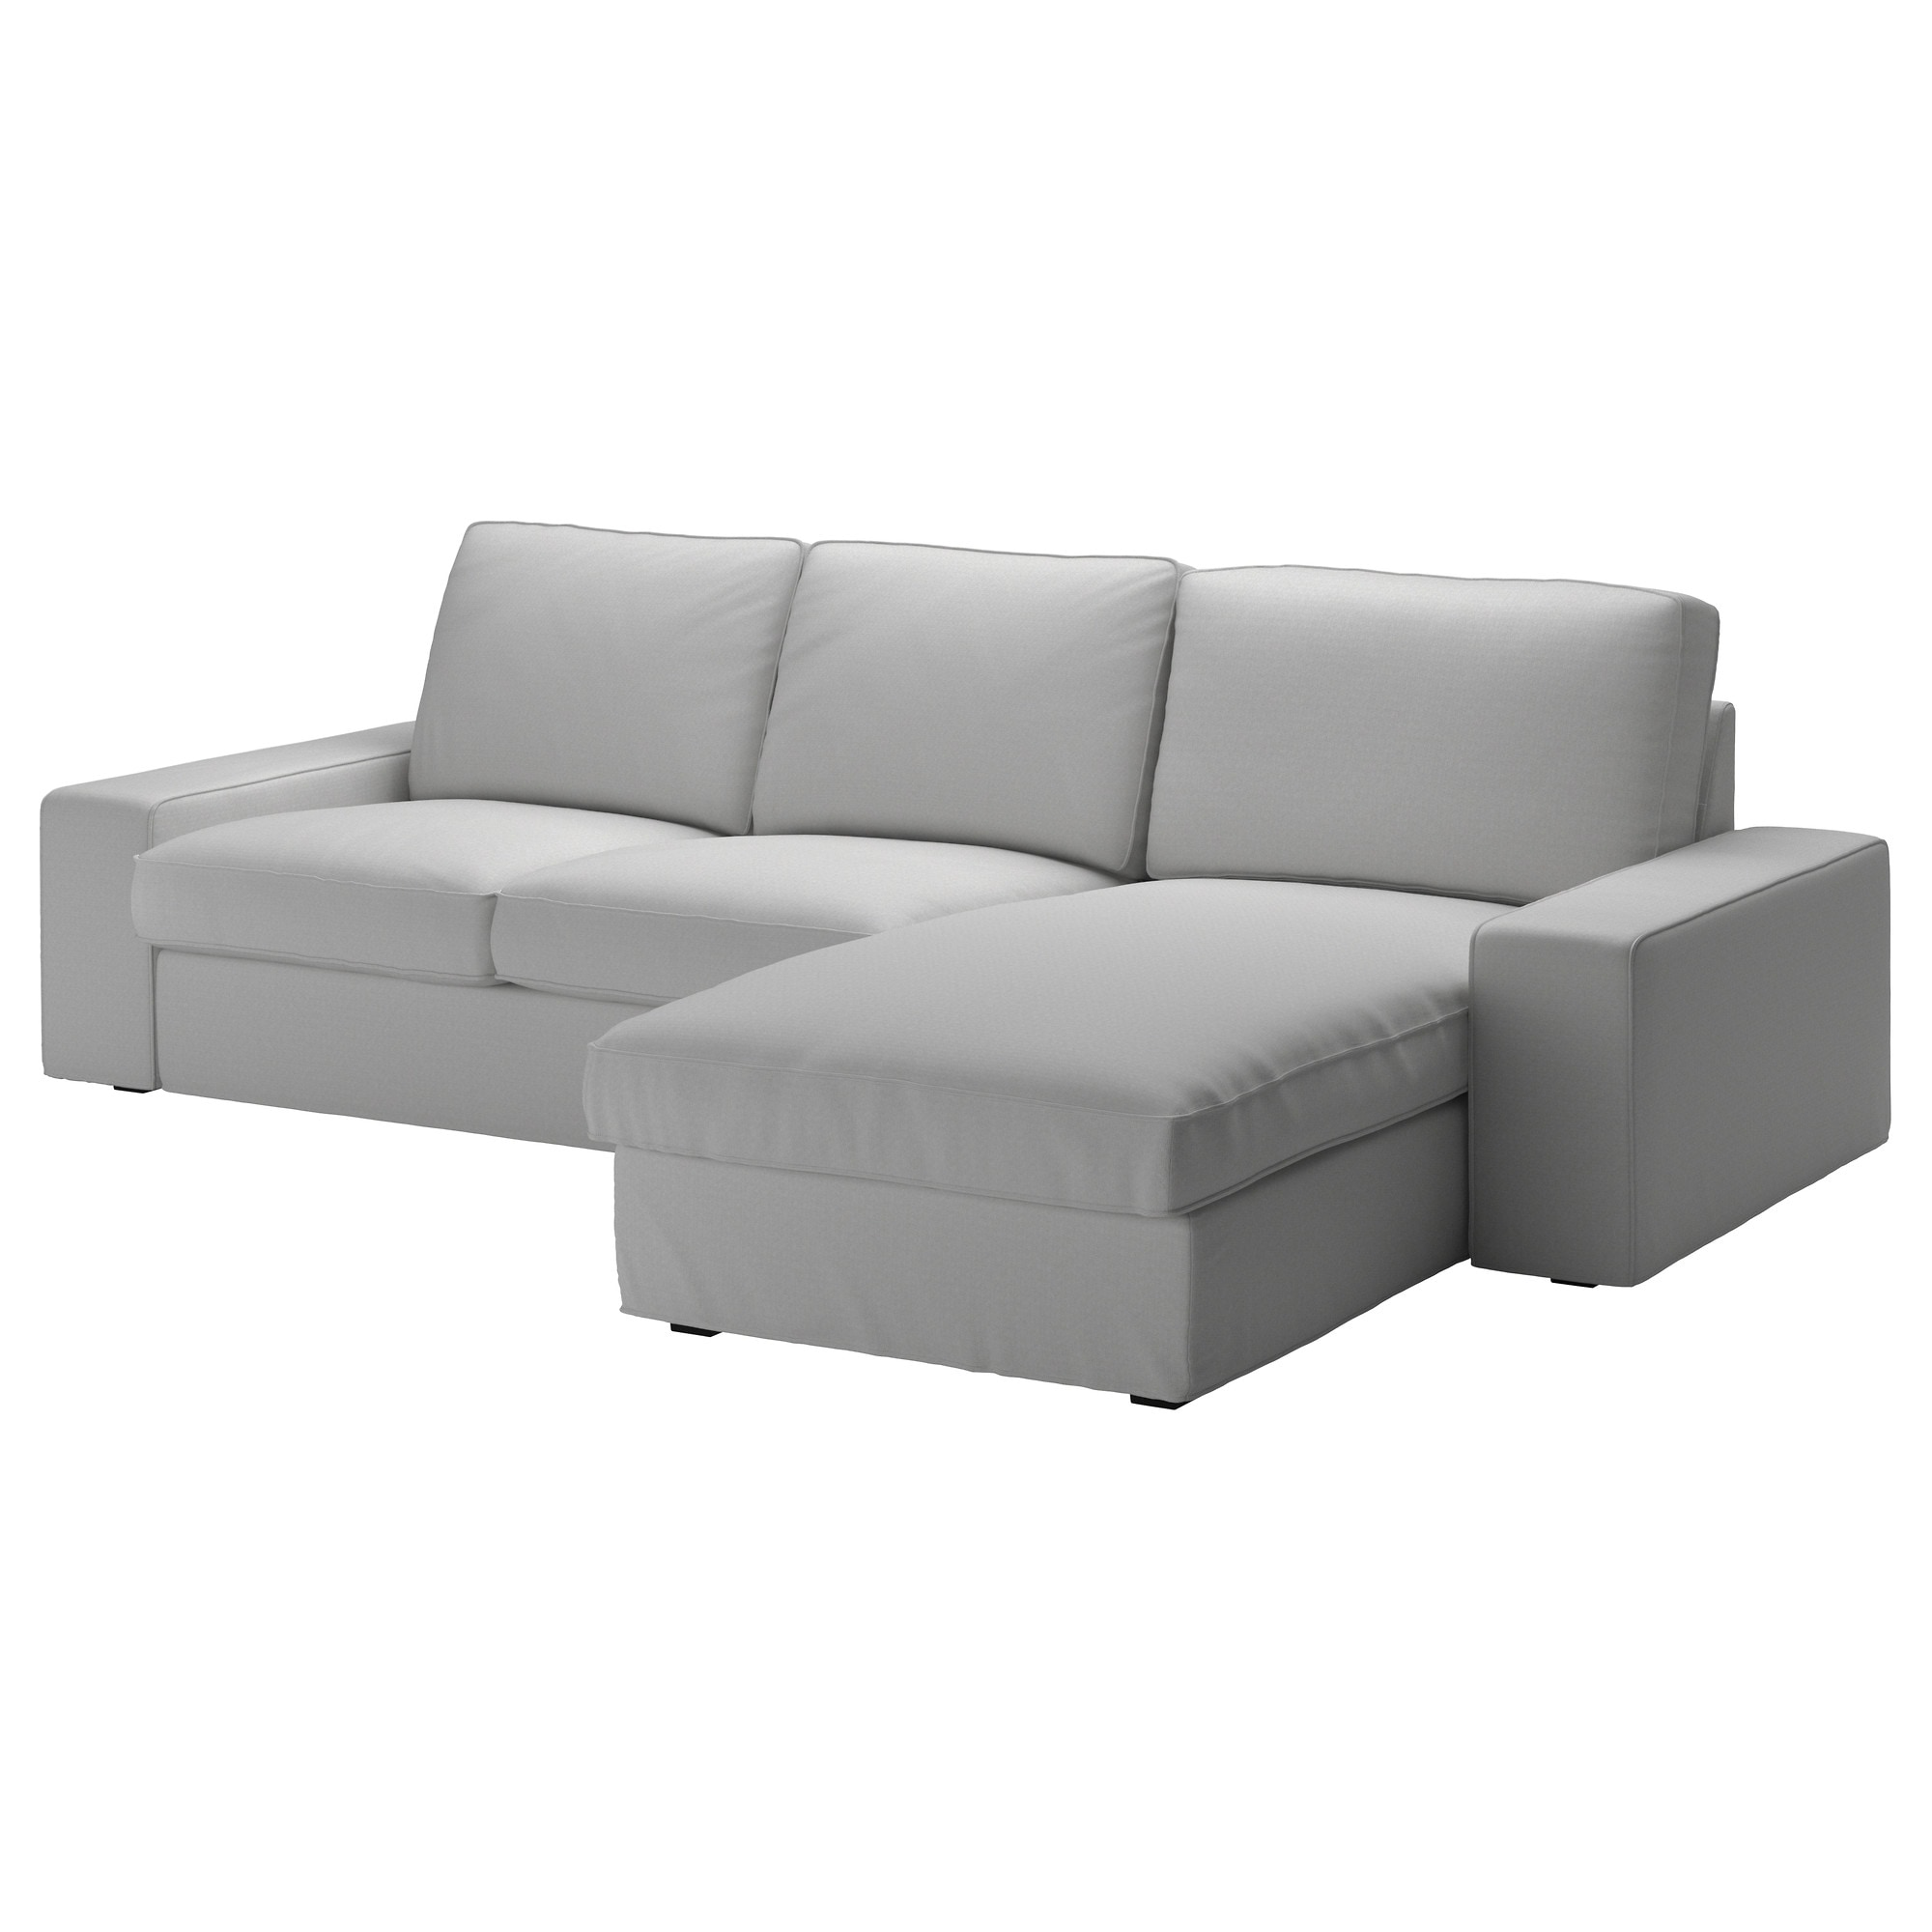 KIVIK Sectional 3 seat Orrsta light gray IKEA